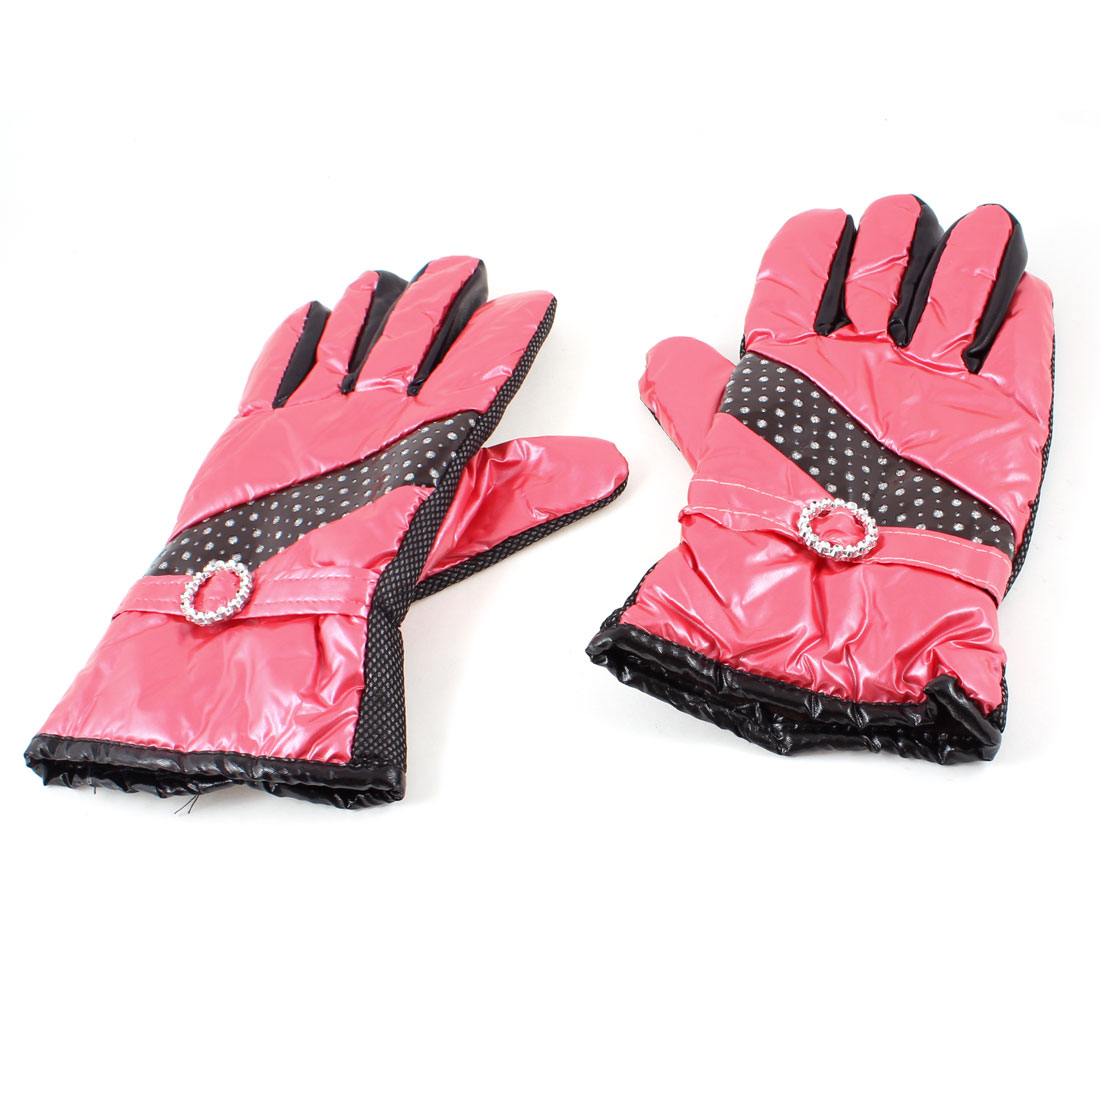 Ladies Winter Outdoor Cycling Faux Leather Full Finger Warm Gloves Red Pair